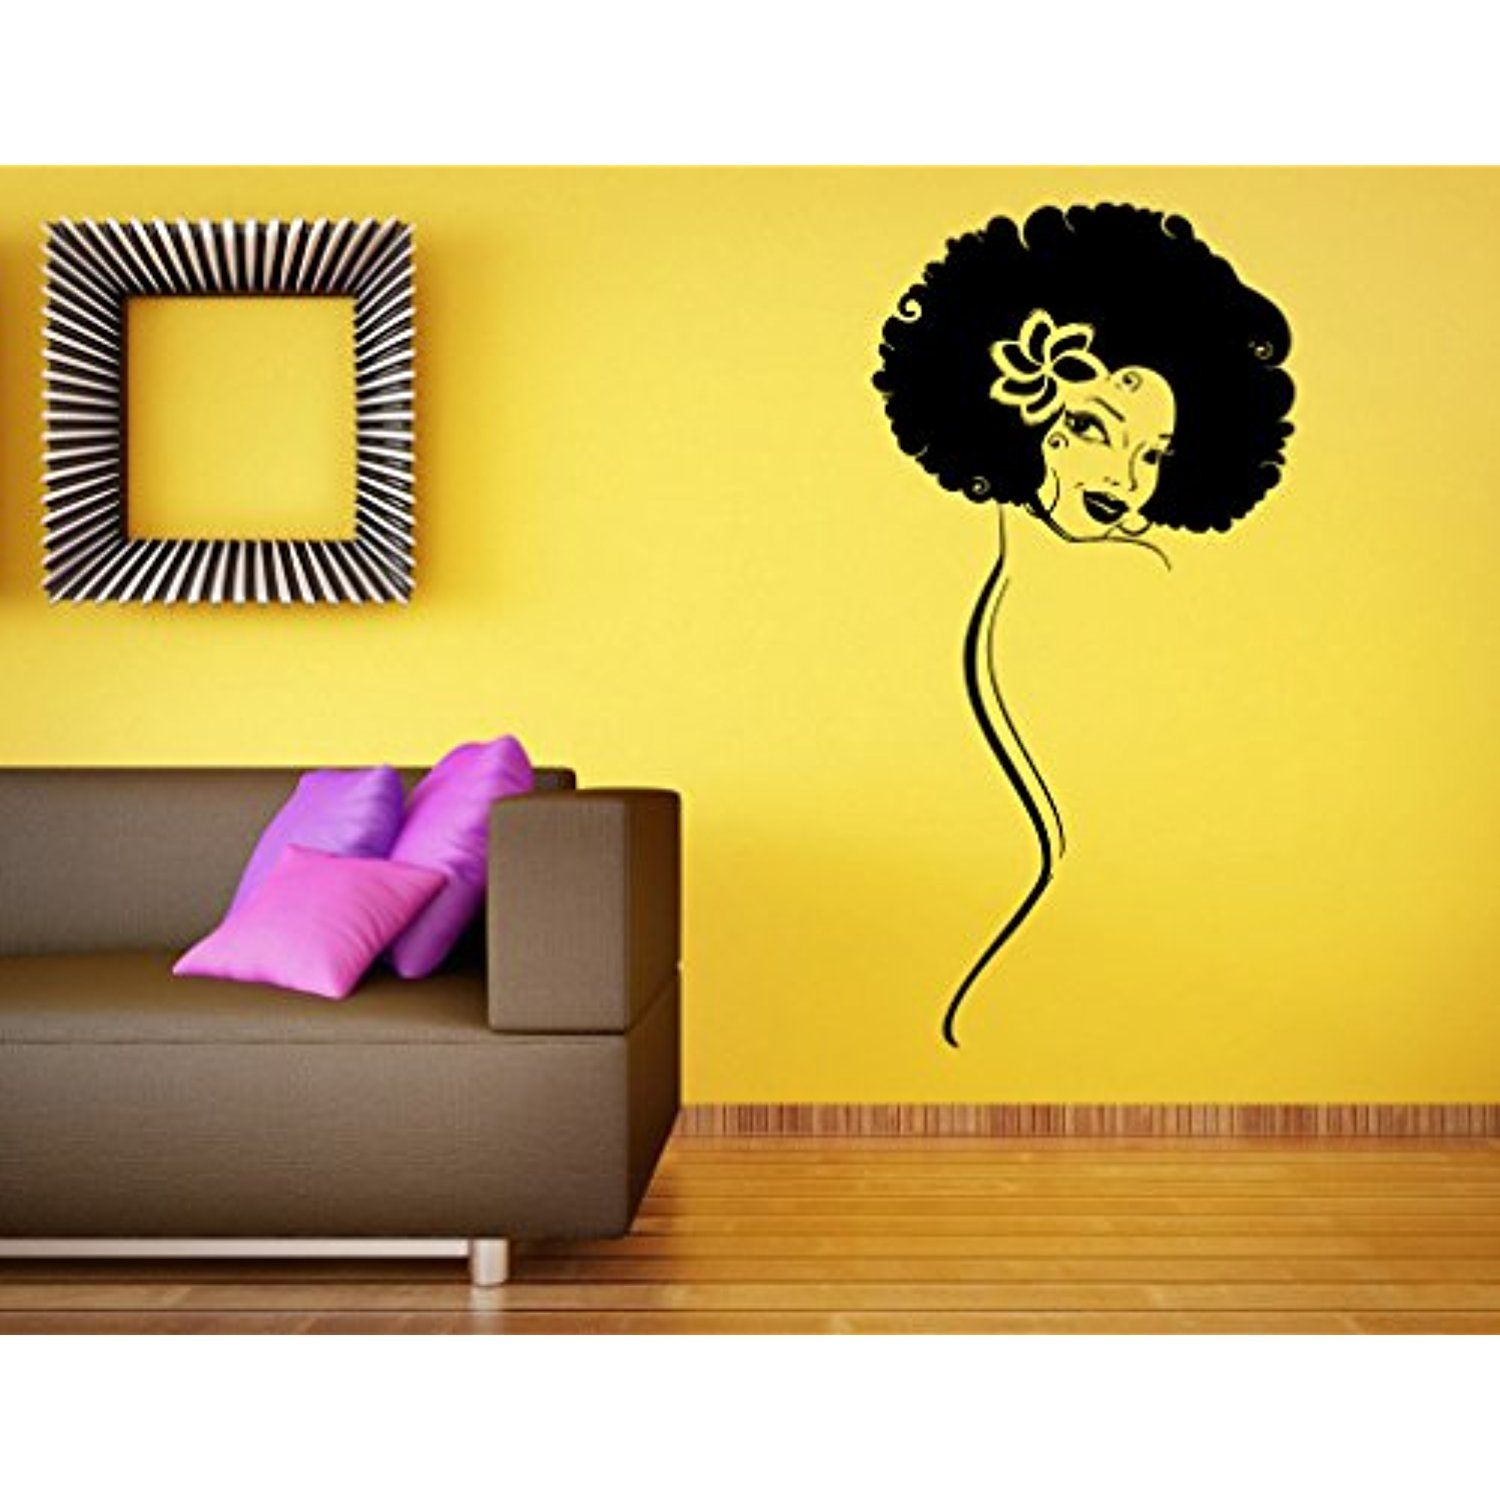 Africa African Girl Wall Stickers Vinyl Decals Home Decor Sticker ...